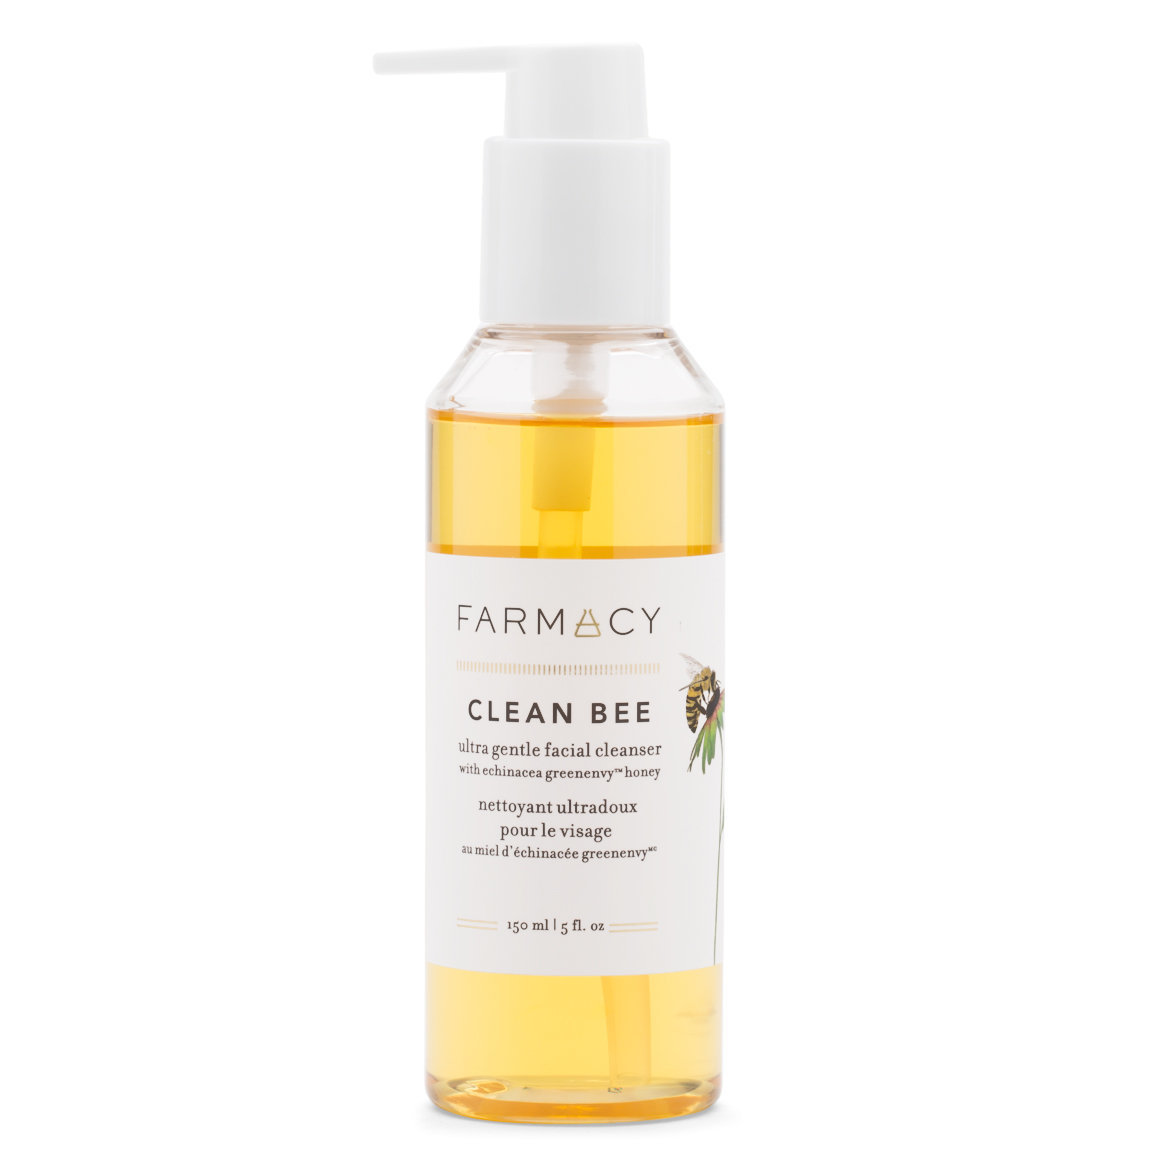 Farmacy Clean Bee Ultra Gentle Facial Cleanser product smear.